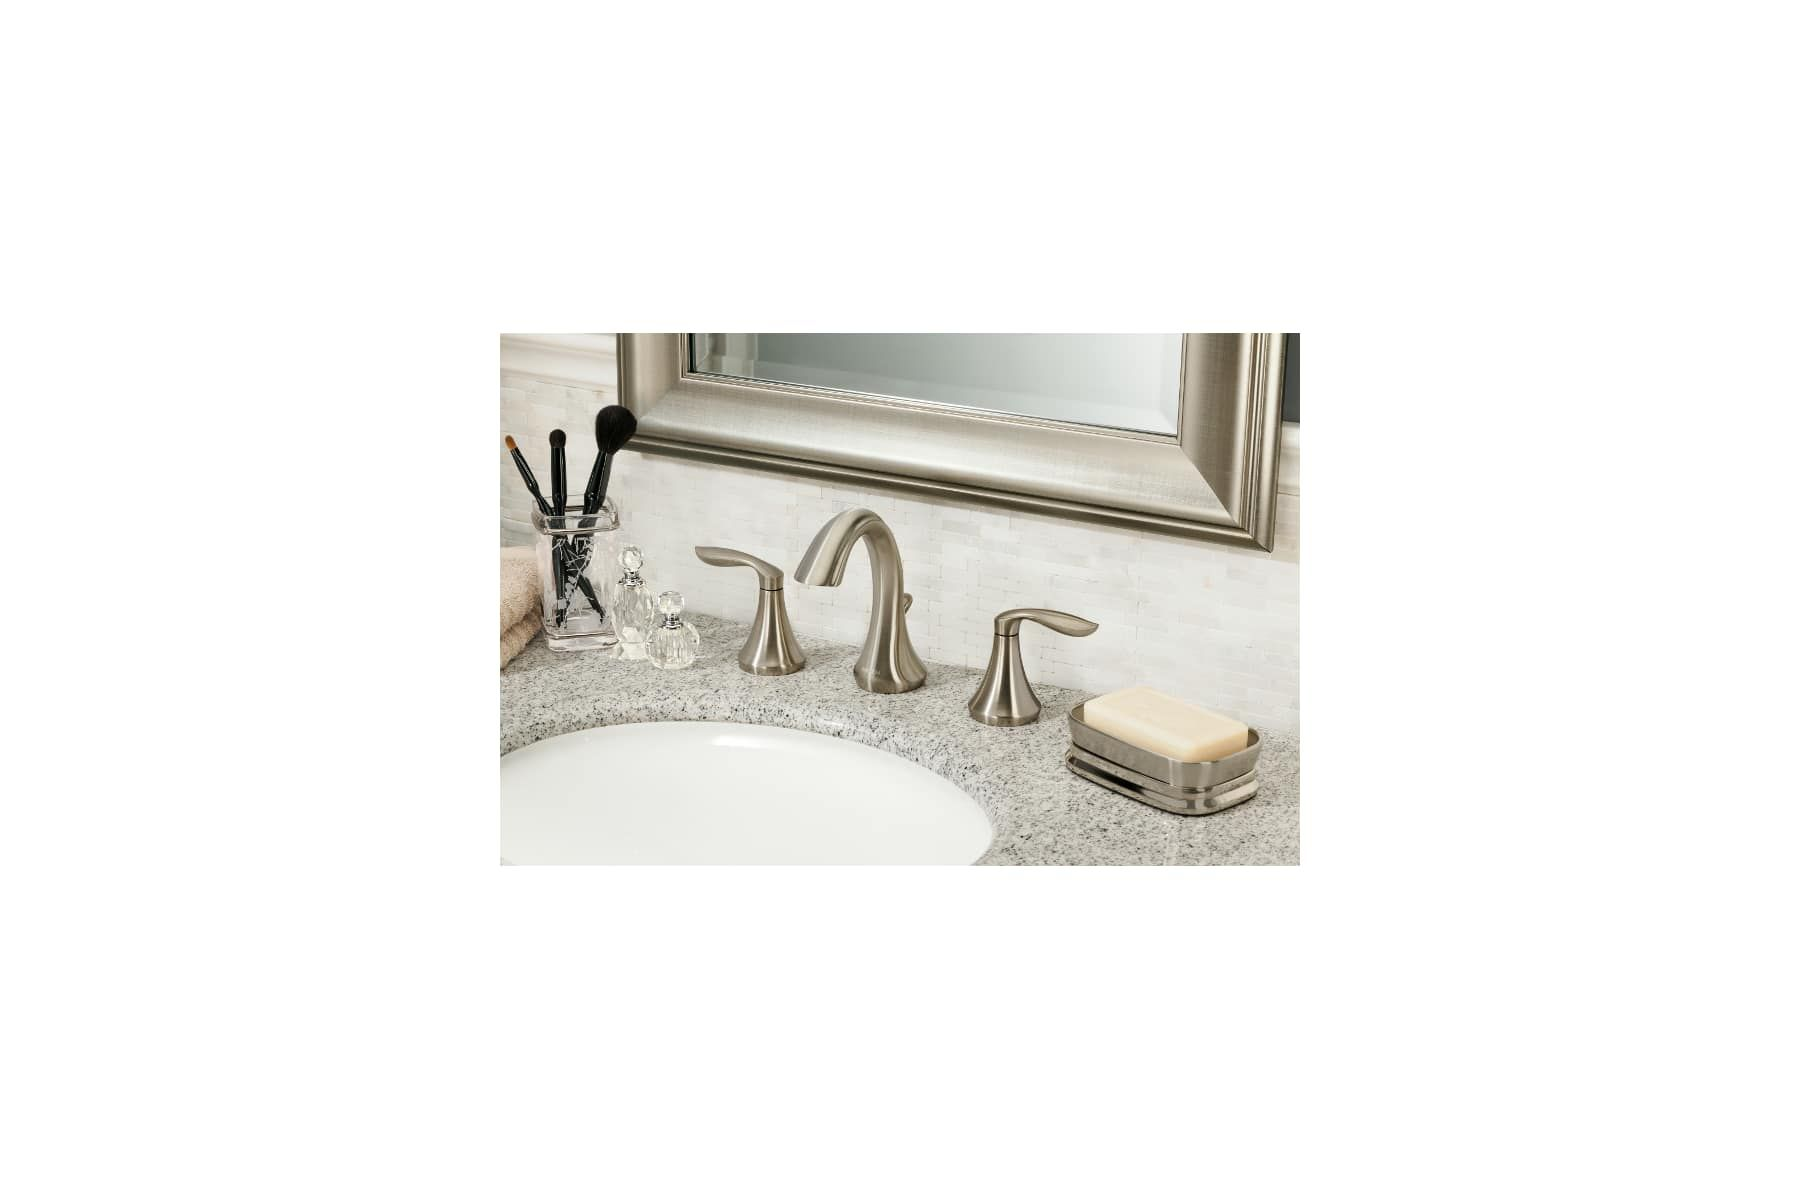 Moen T6420 Eva 1 2 Gpm Deck Mounted Bathroom Faucet With Pop Up Plug Less Drain Brushed Nickel Faucet Bathroom Sink Faucets Double Handle Bathroom Faucets Brushed Nickel Faucet Faucet